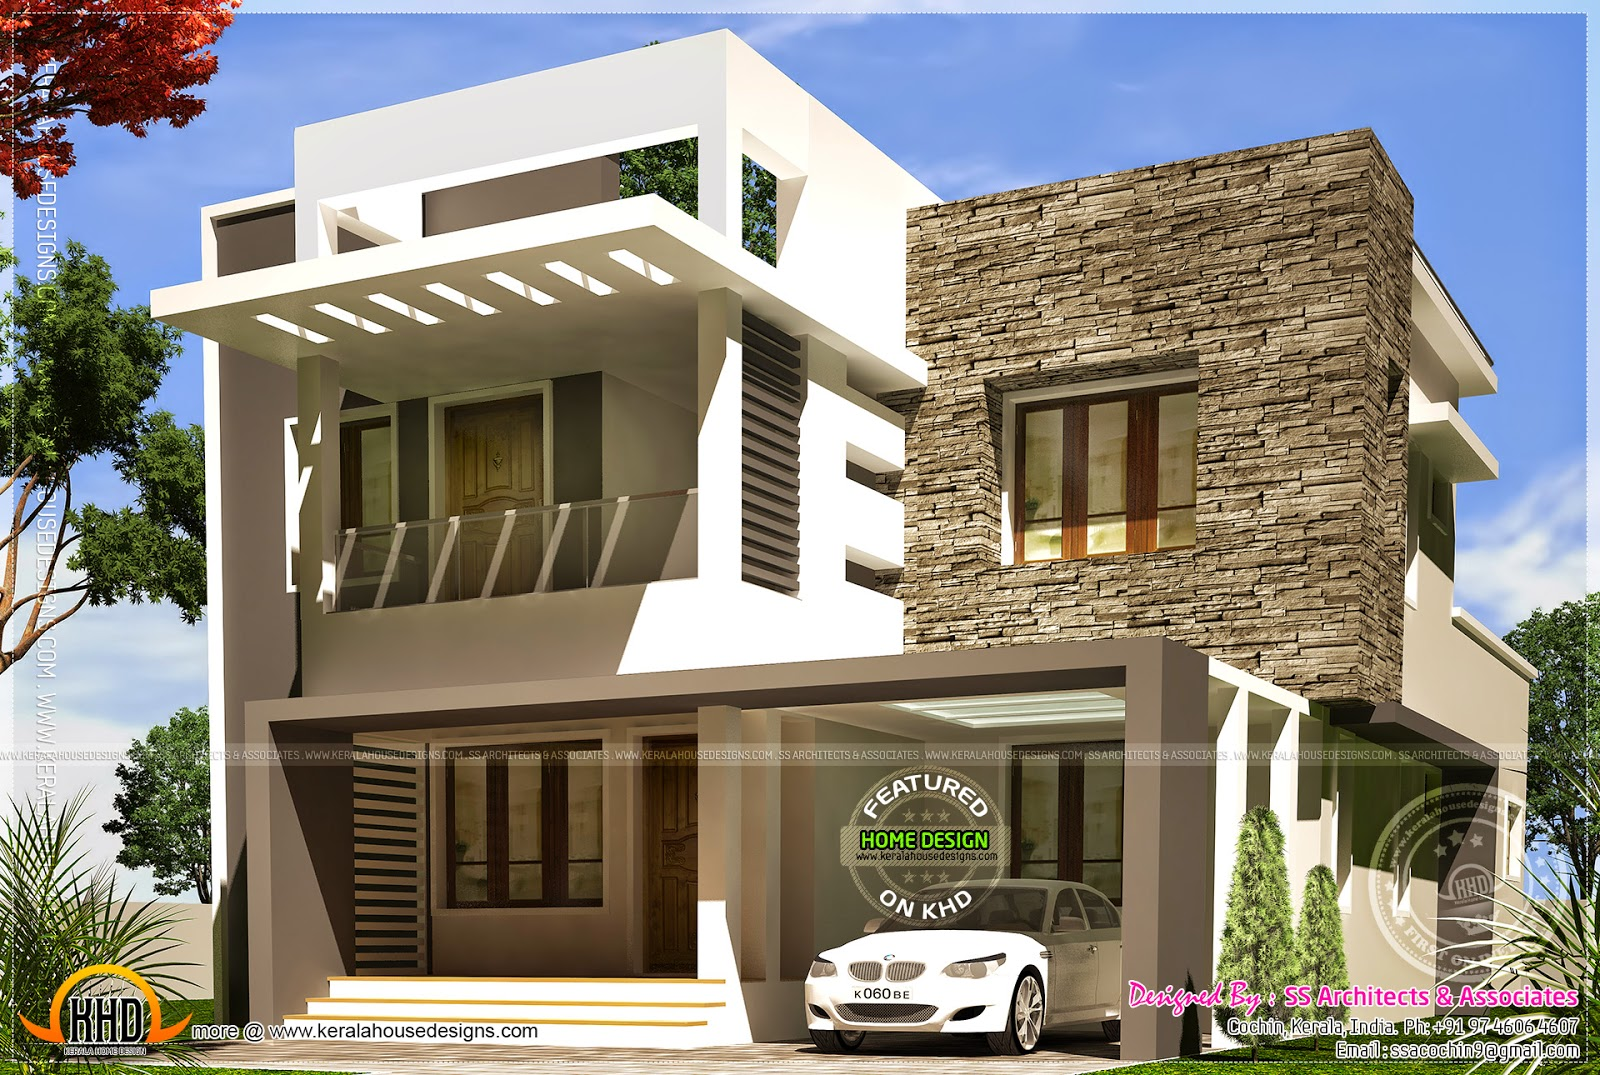 Pics for 1000 sq ft house plans with front elevation for Images of front view of beautiful modern houses